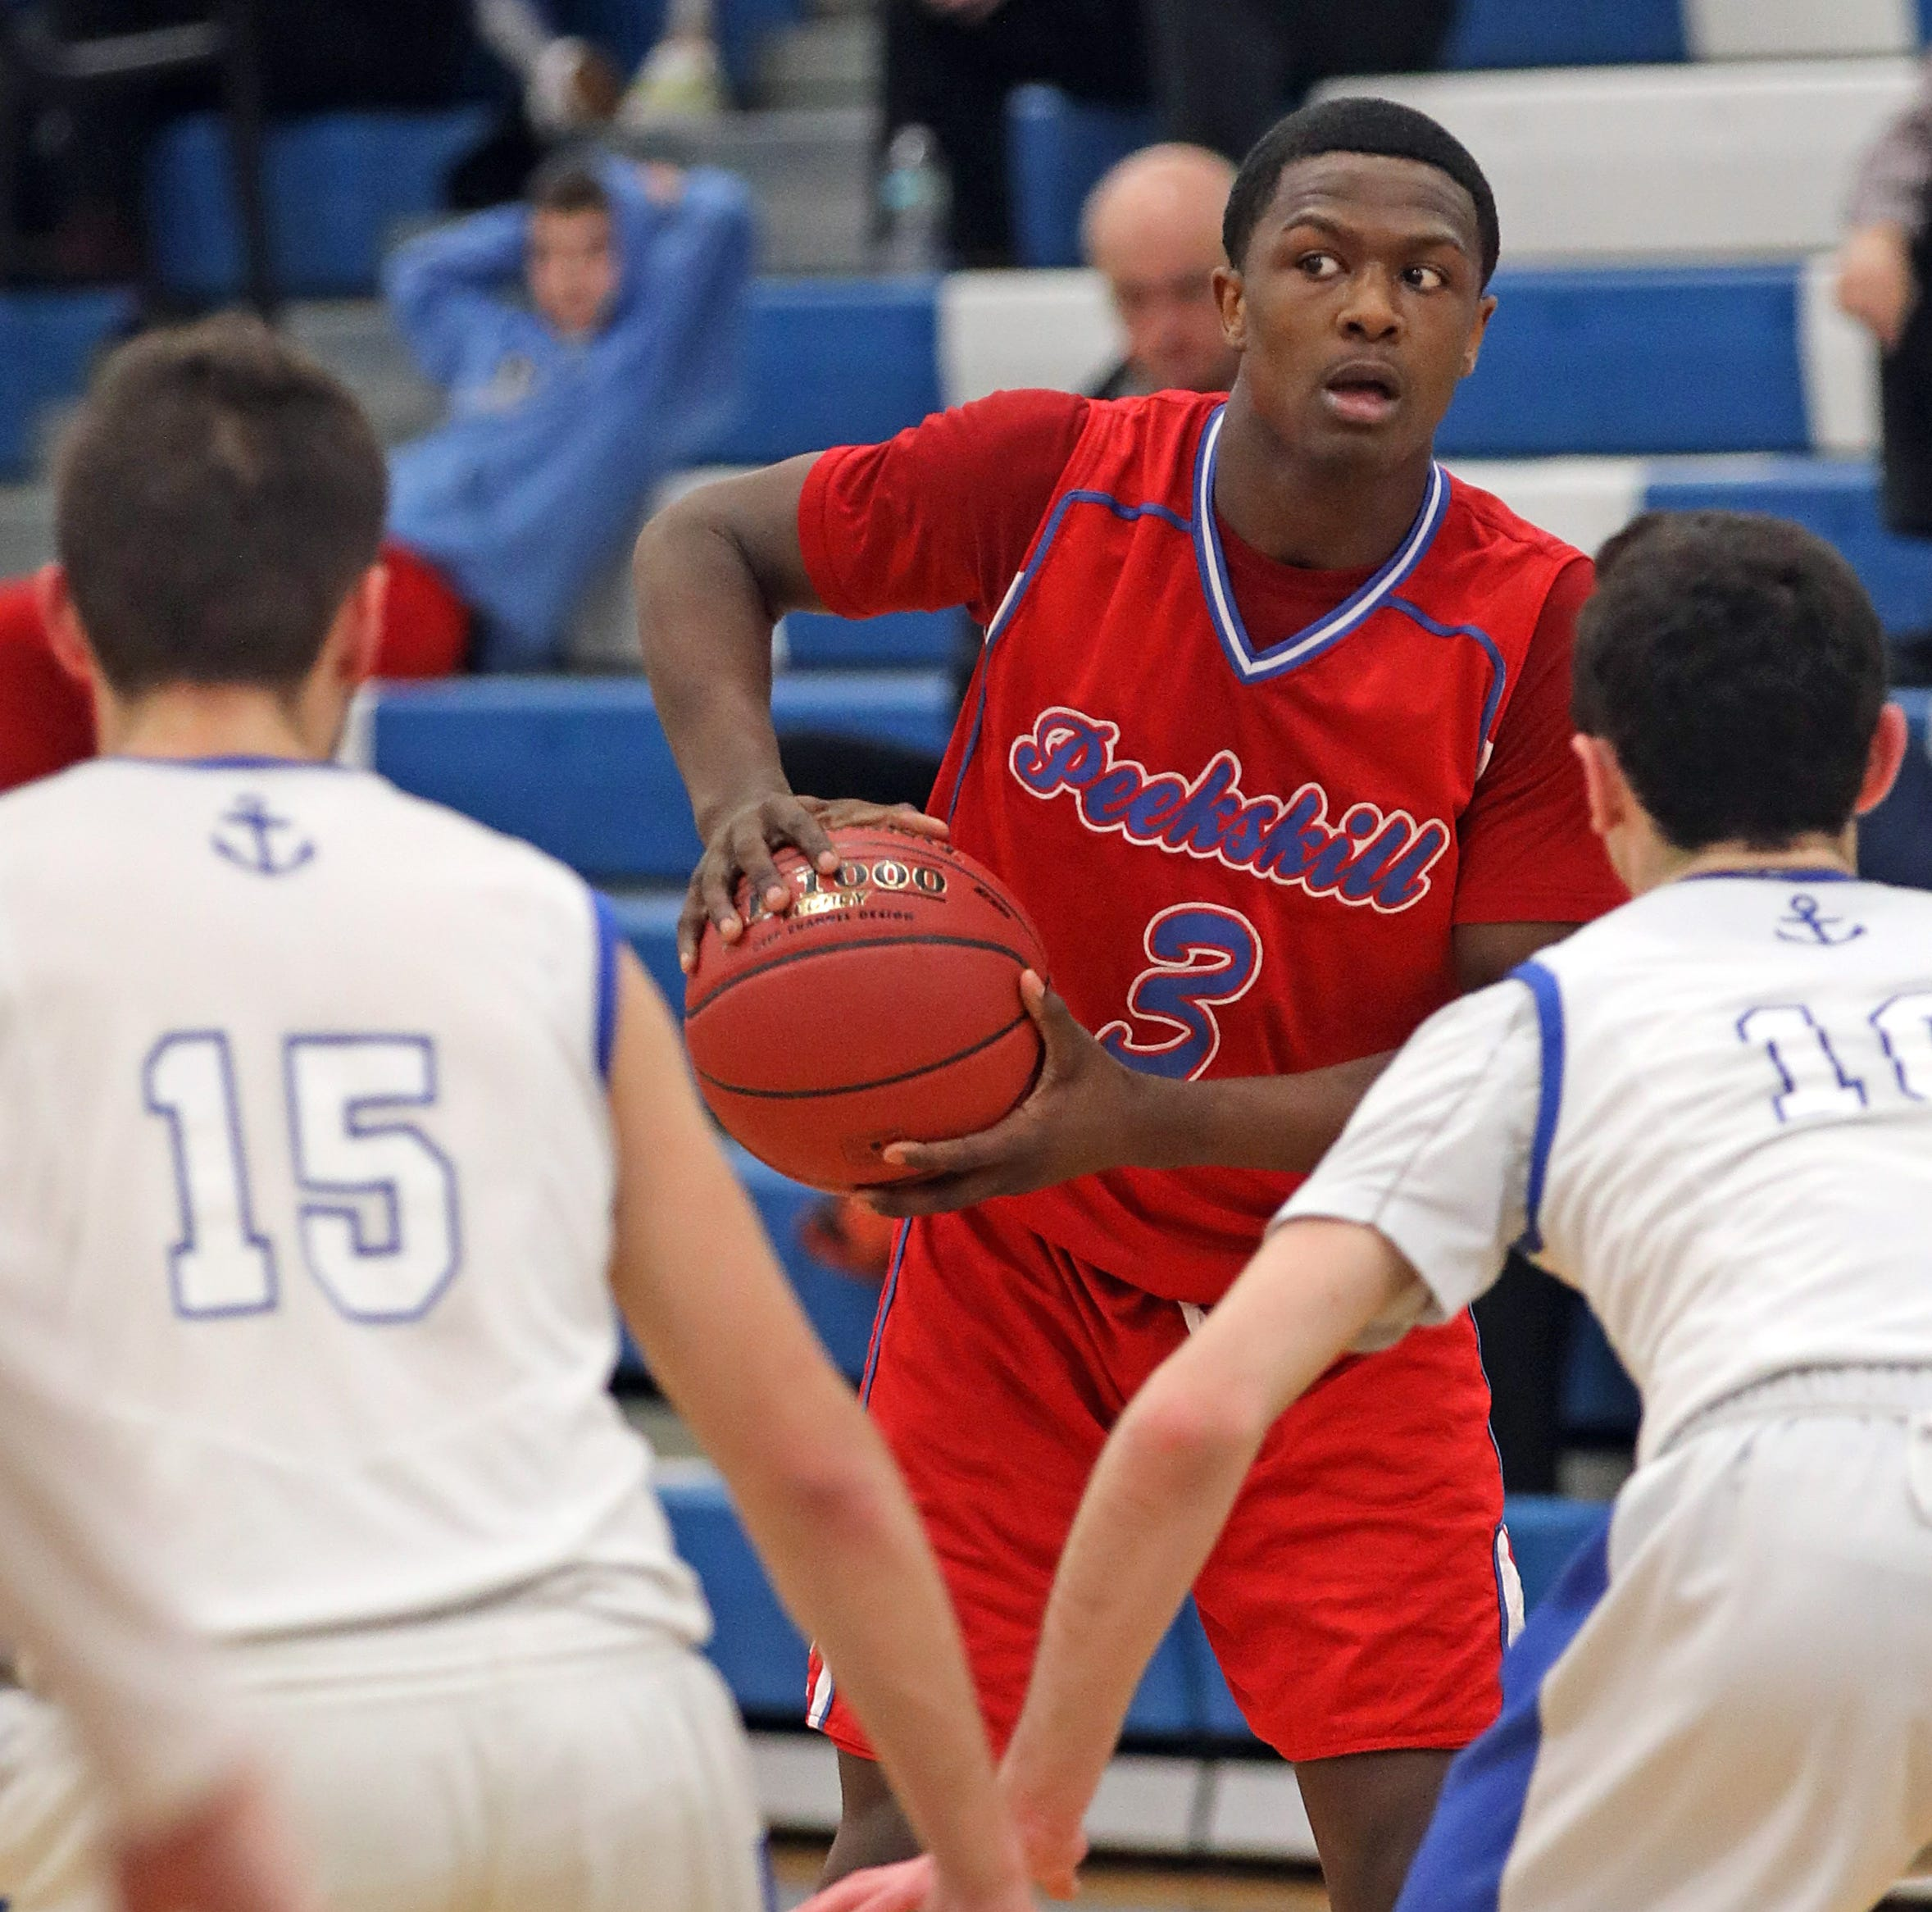 Boys basketball: Peekskill's Shion Darby picked Section 1's Mr. Basketball